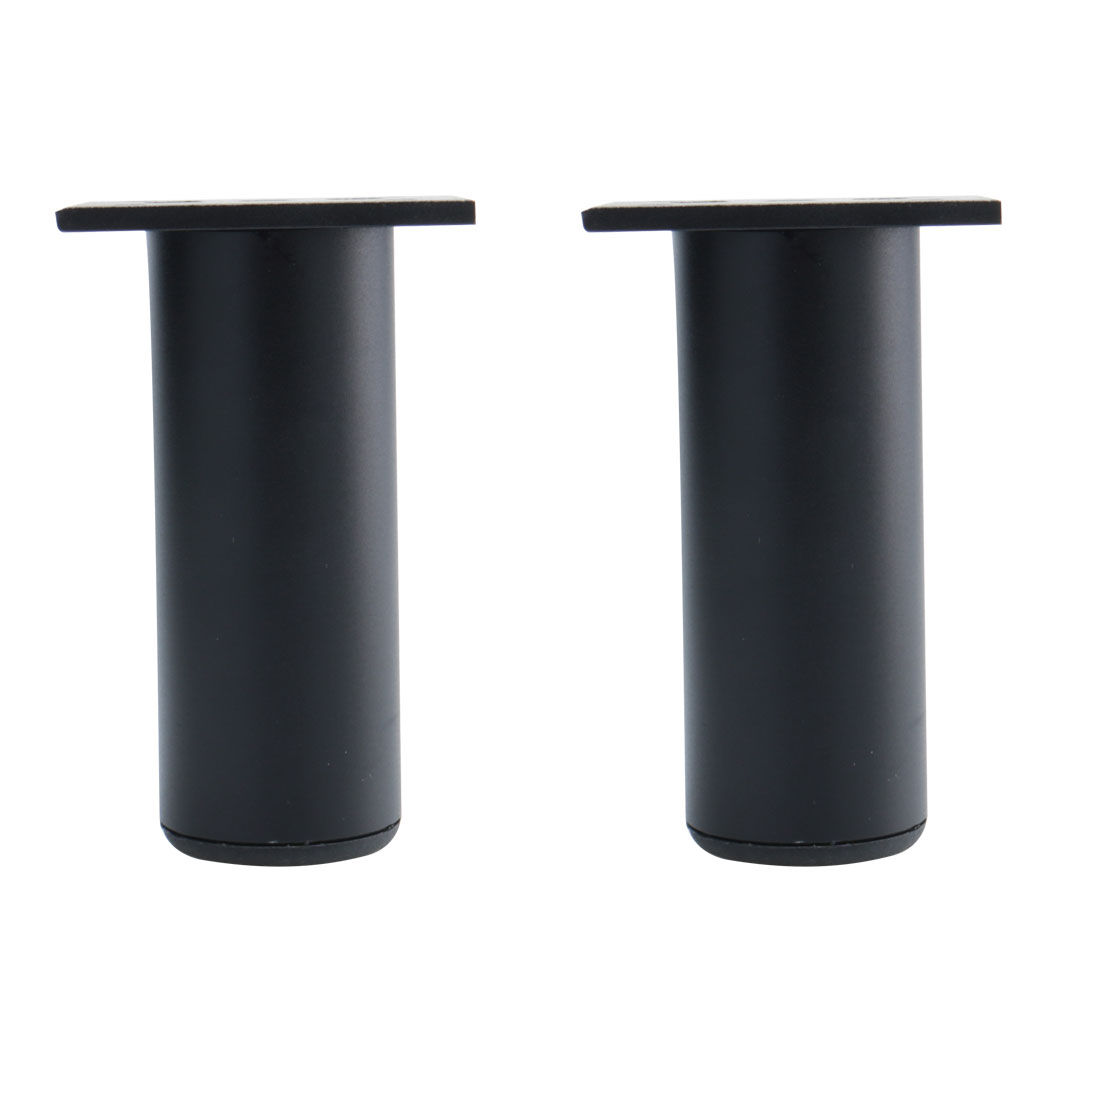 "4"" Furniture Legs Aluminium Alloy Sofa Replacement Height Adjuster Black 2pcs"